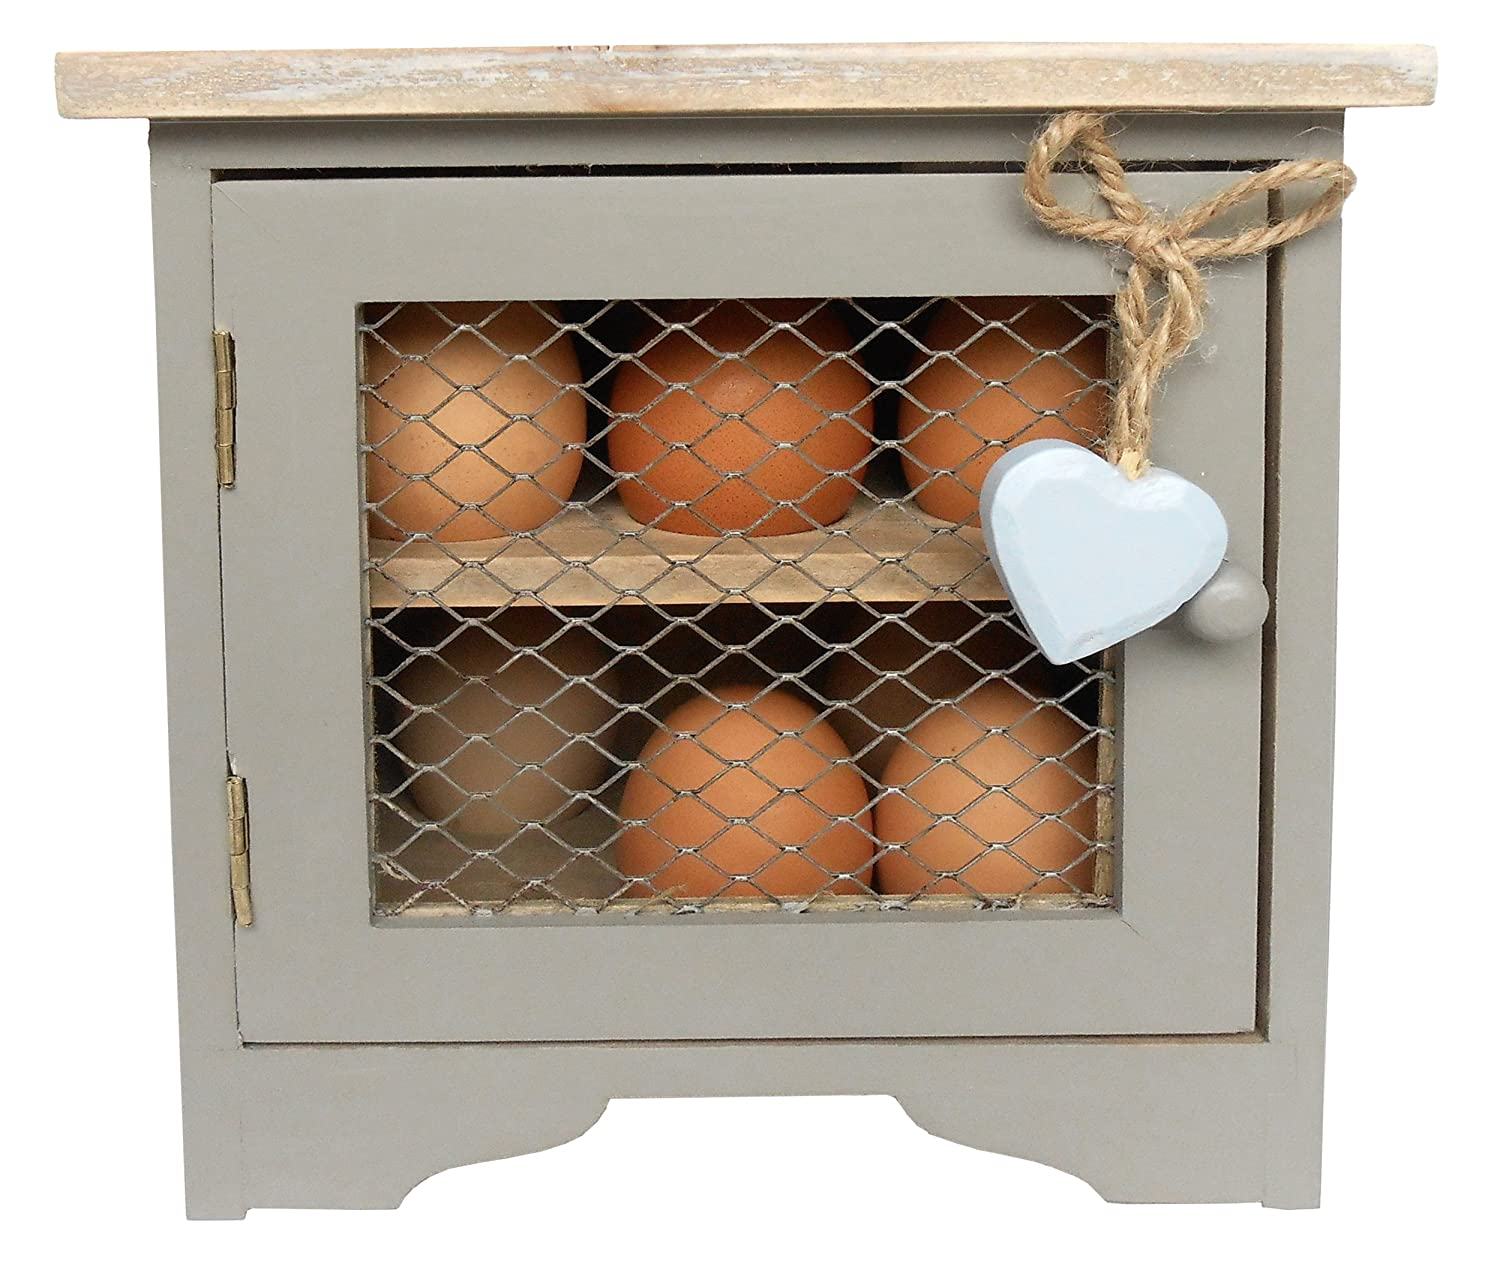 French Grey Egg Cabinet with Blue Hanging Heart.: Amazon.co.uk ...